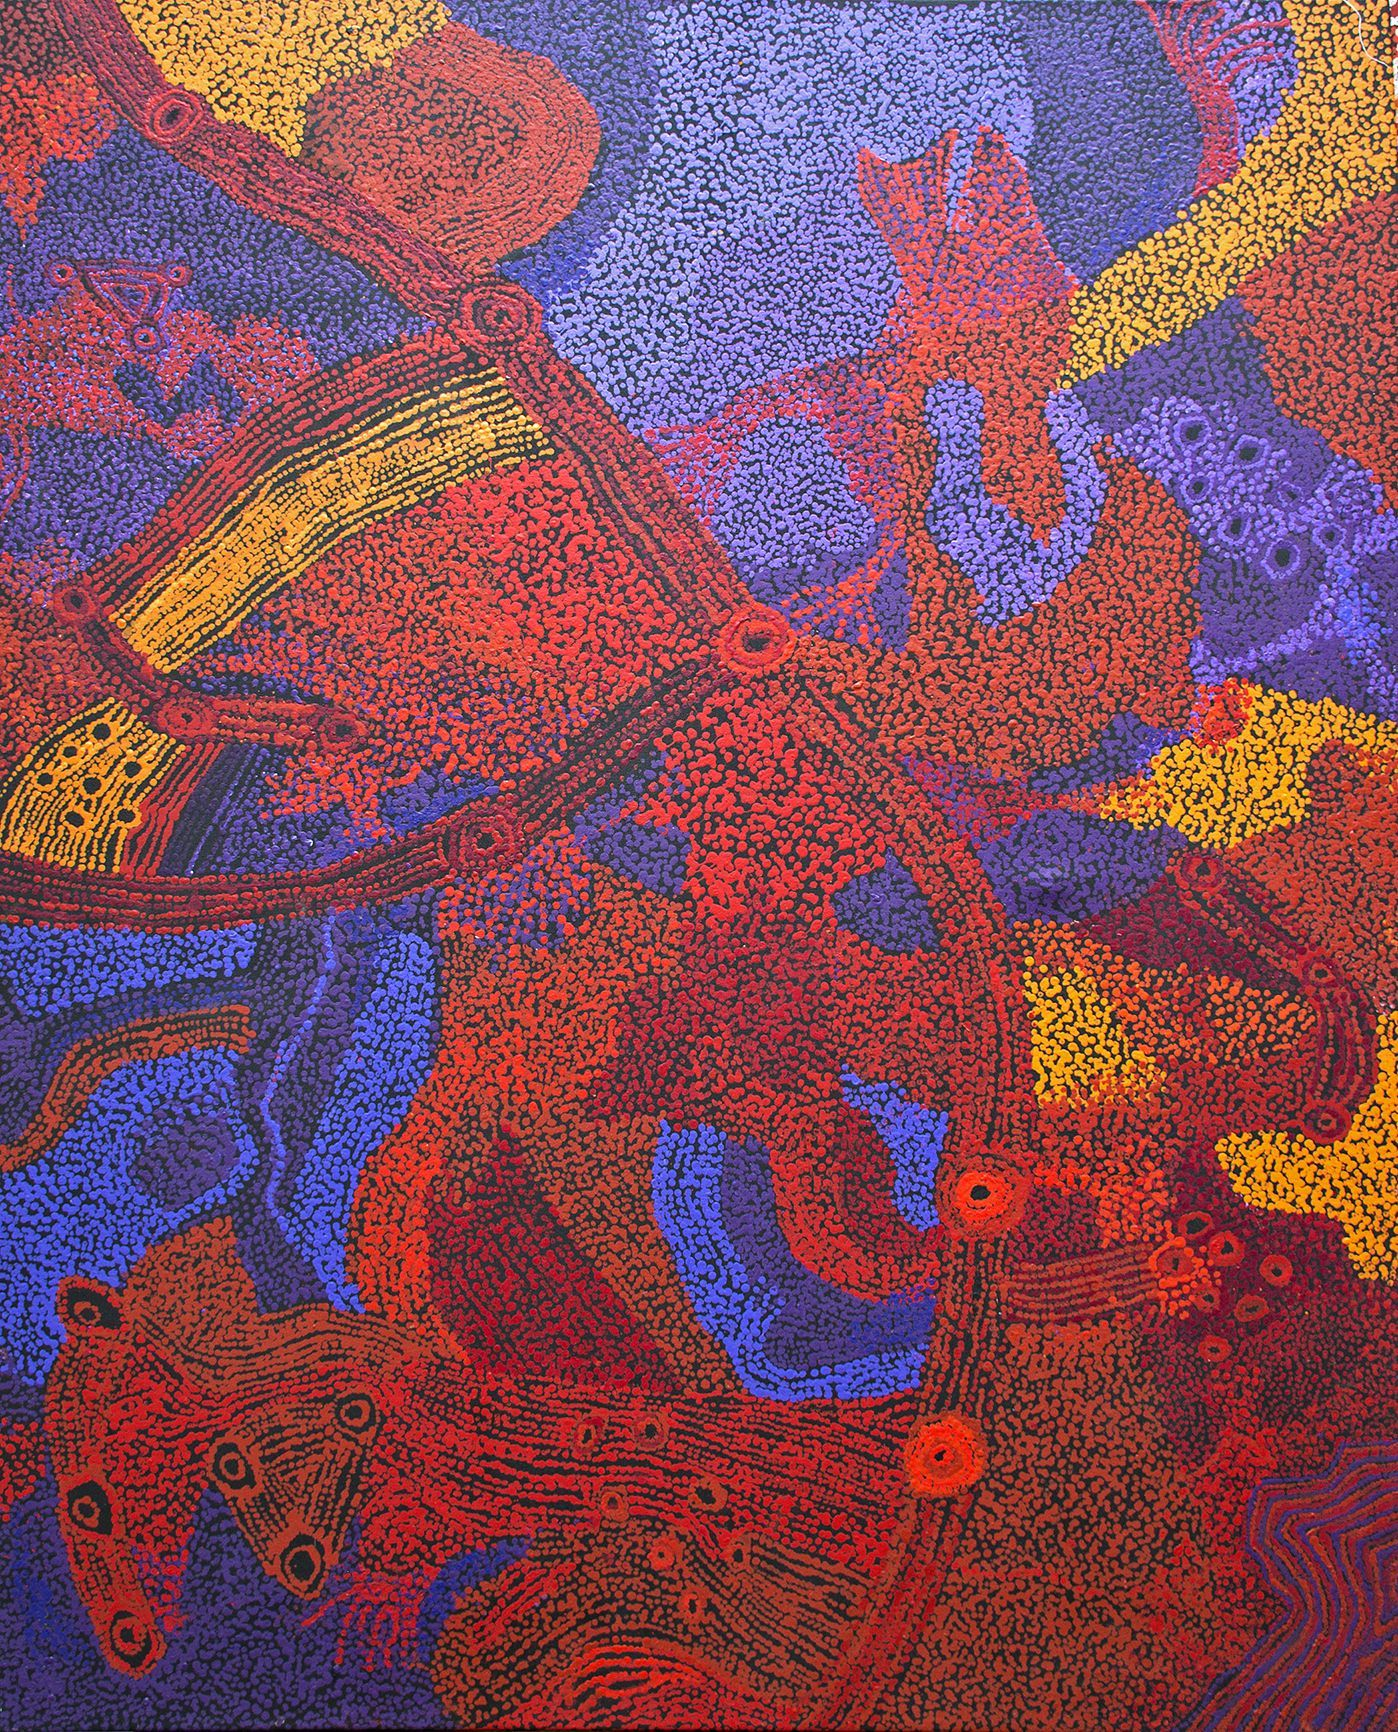 Sylvia Kanytjupai Ken - Seven Sister Dreaming Time stories - 152 x 122 cm http://www.aboriginalsignature.com/art-aborigene-tjala/sylvia-kanytjupai-ken-seven-sister-dreaming-time-stories-152-x-122-cm